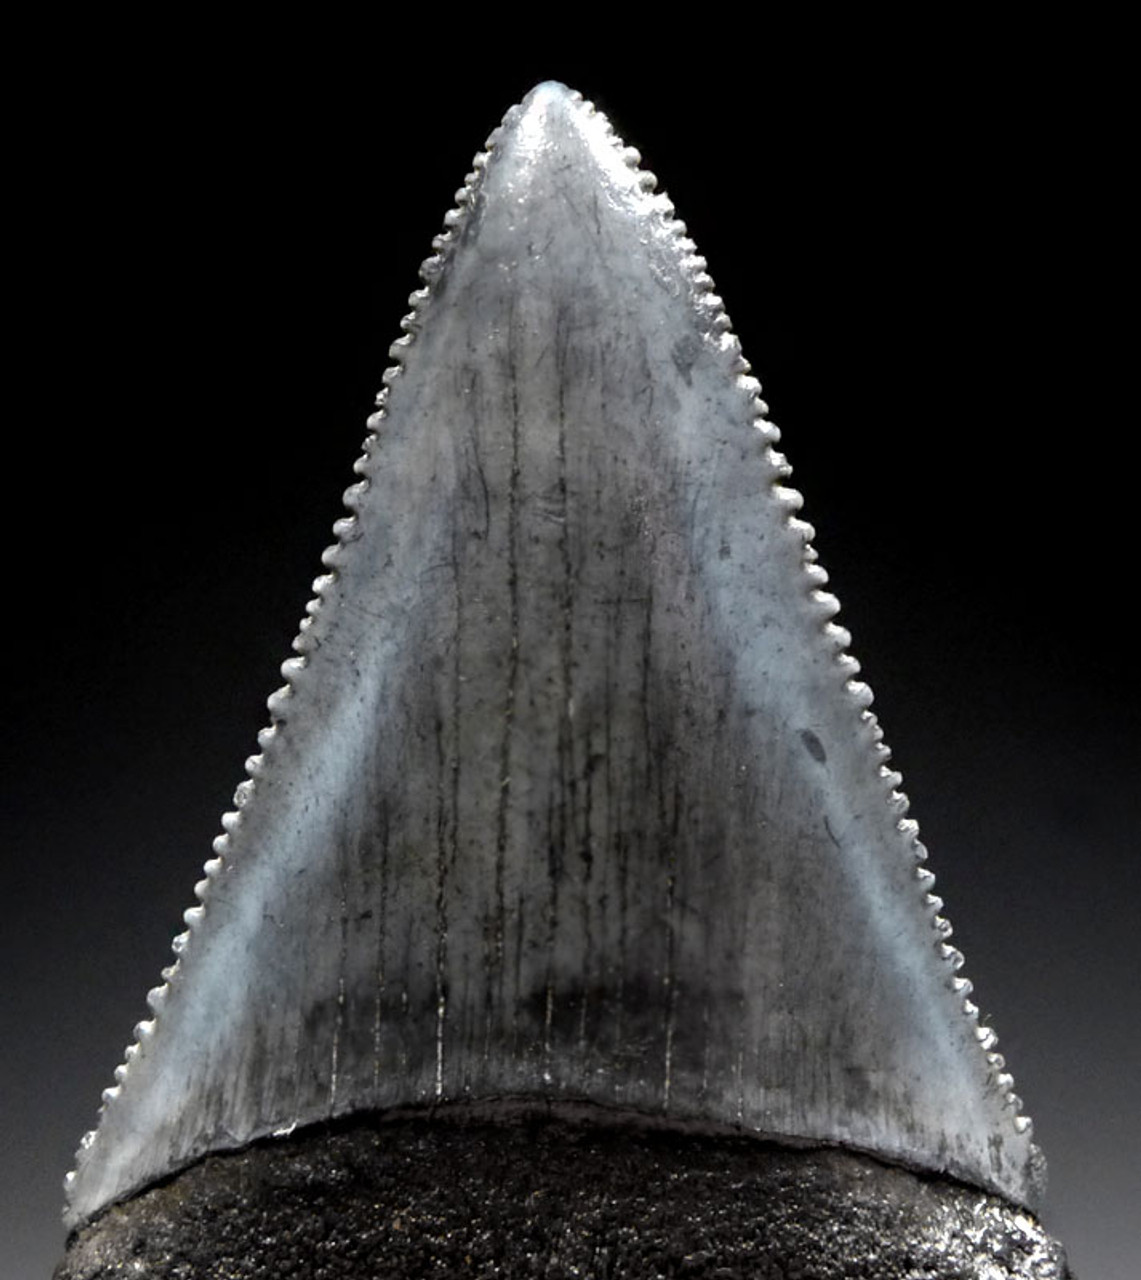 SHX056 - FINE QUALITY LARGE 2.15 INCH GREAT WHITE FOSSIL SHARK CARCHARIAS TOOTH